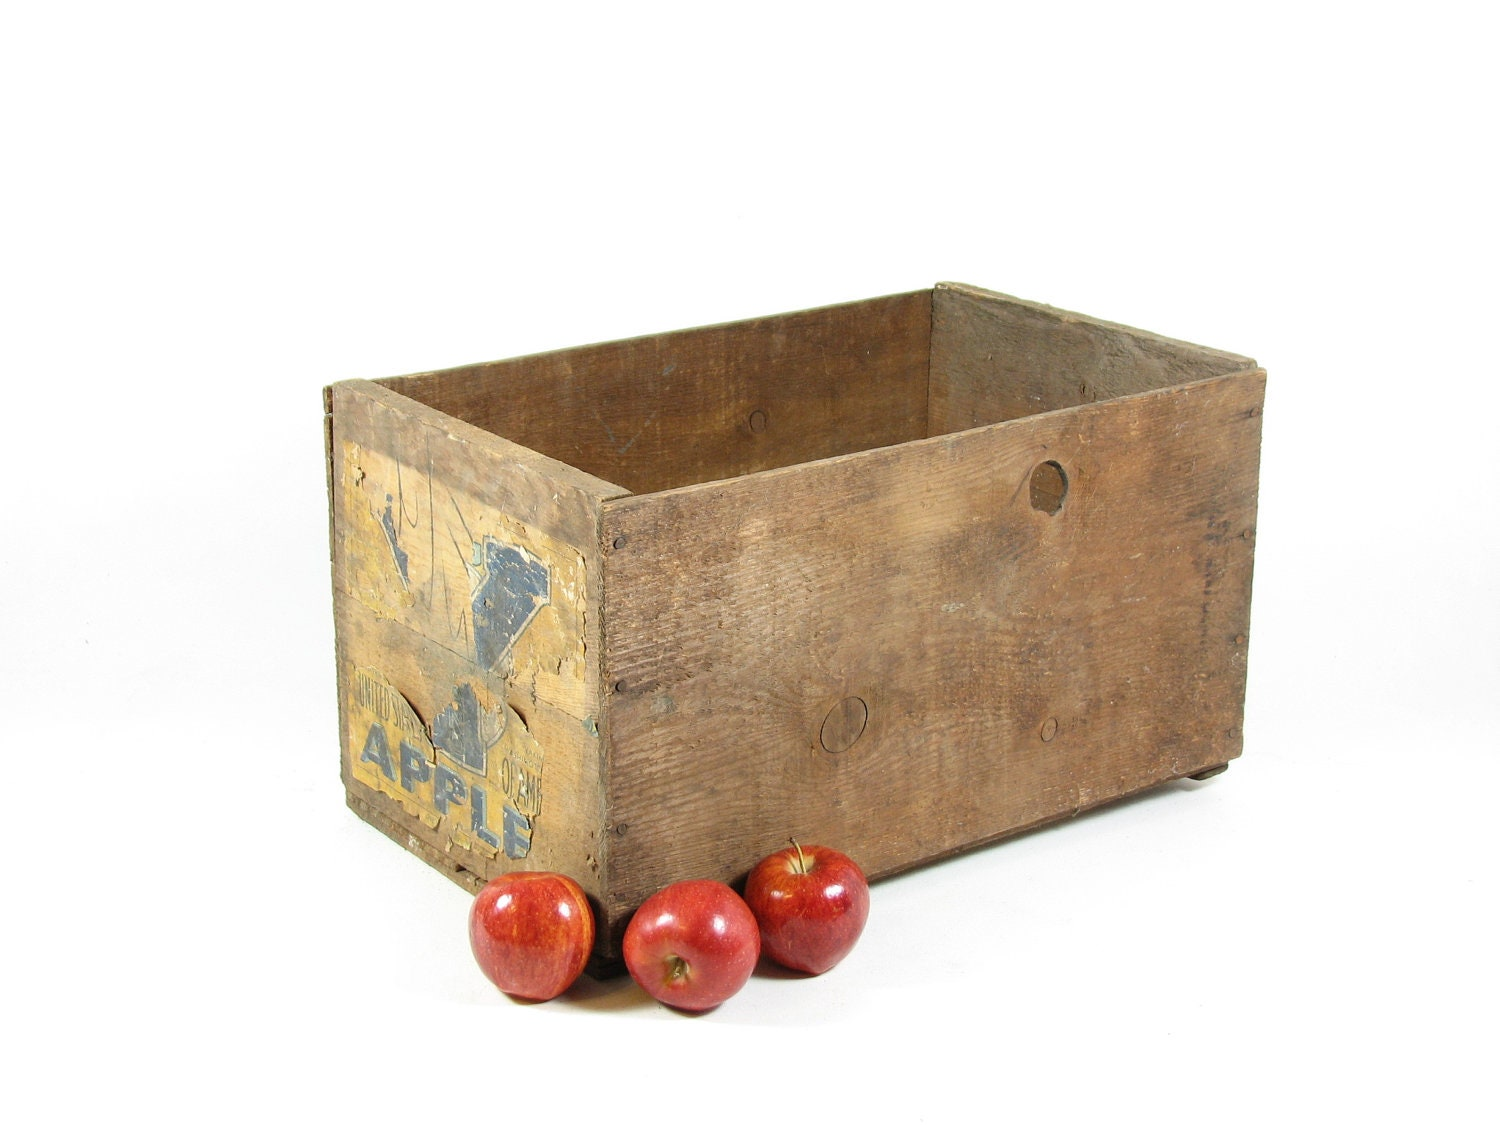 Vintage wood crate wooden box produce fruit crate advertising for Wooden fruit crates